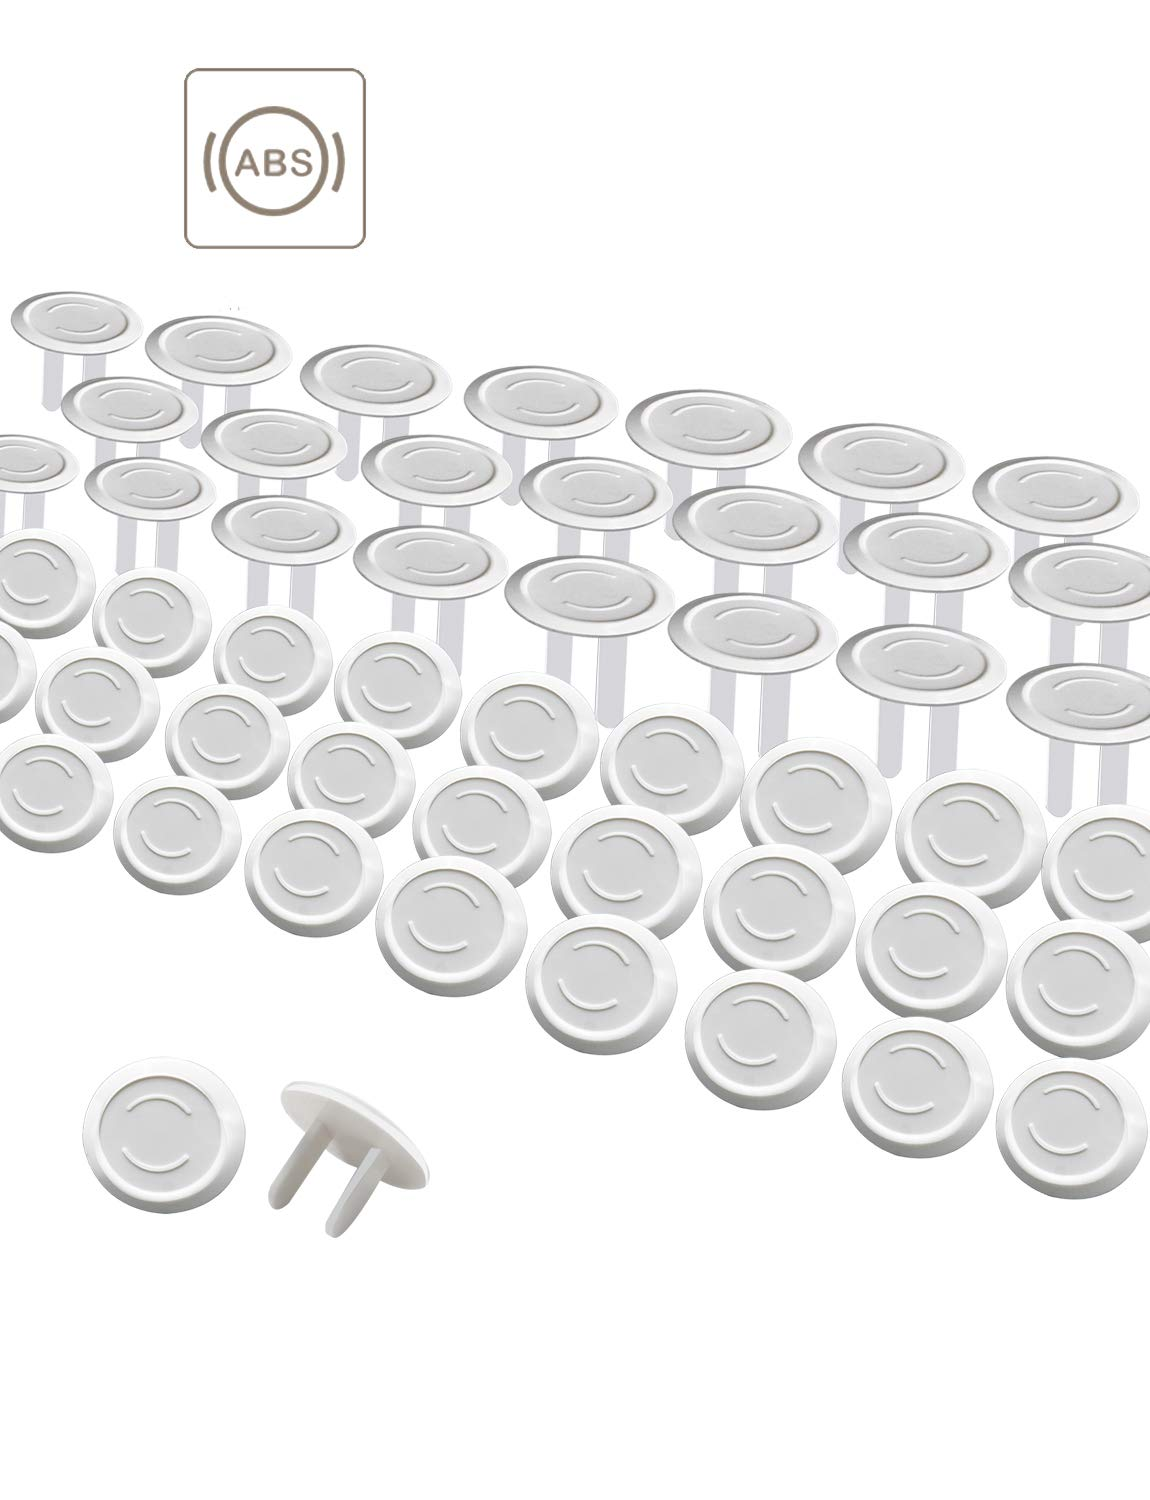 Outlet Covers 50Pack Baby Proof Plug Outlet Covers White Electrical Protector Safety Caps CXY